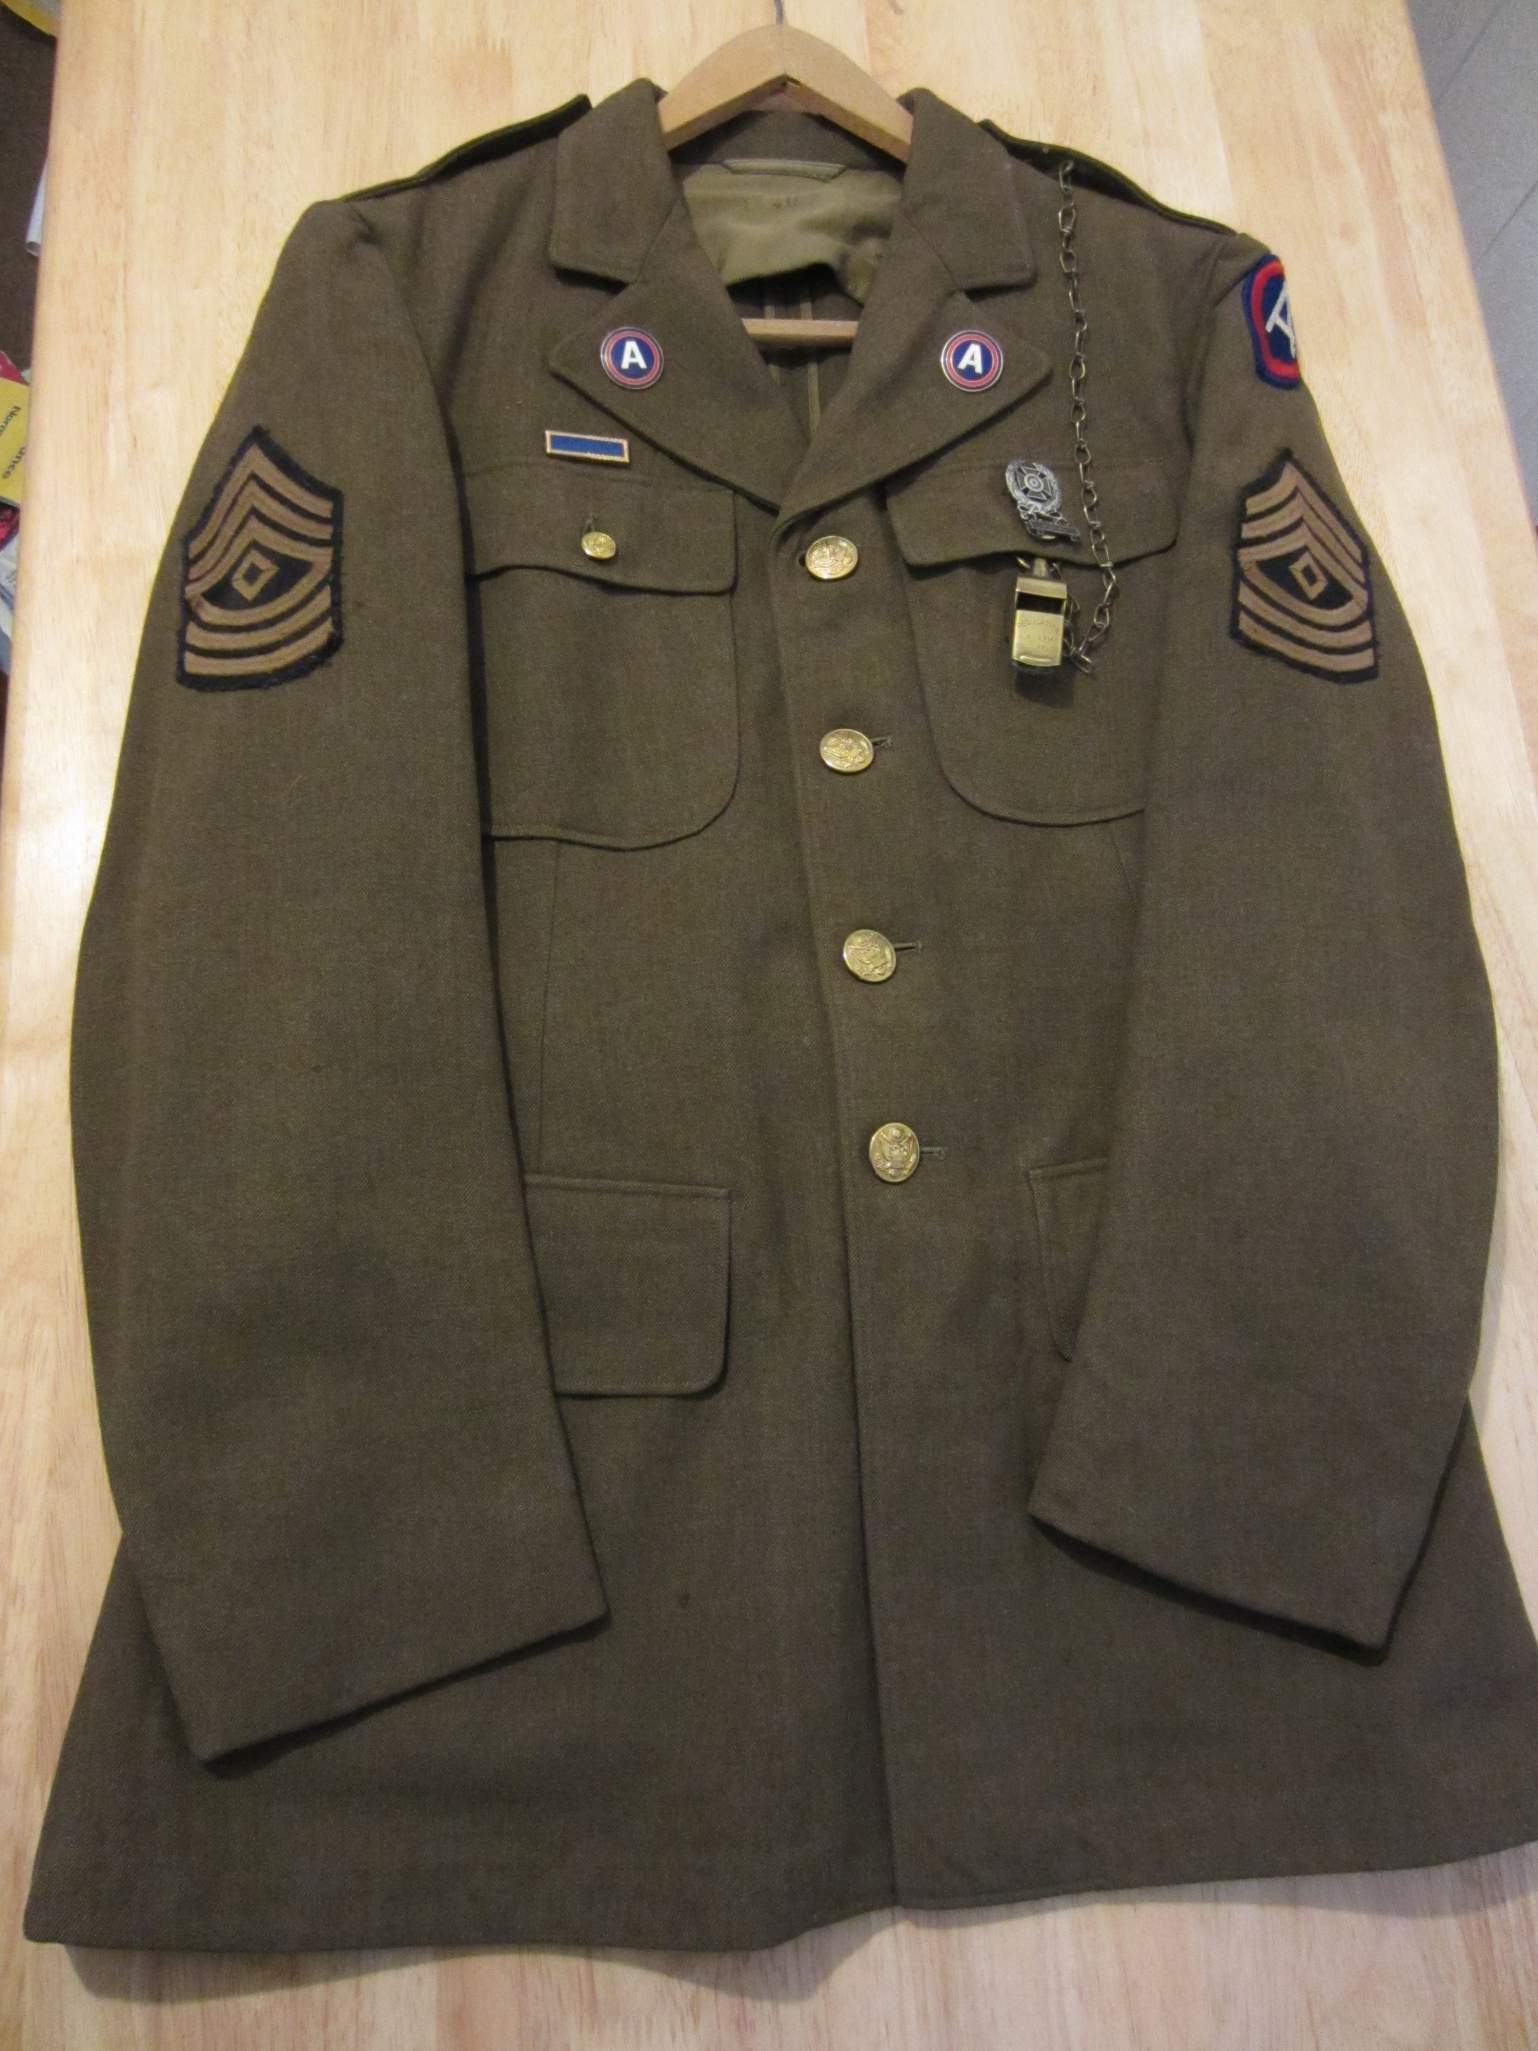 Police uniforms found in Goodwill store - YouTube